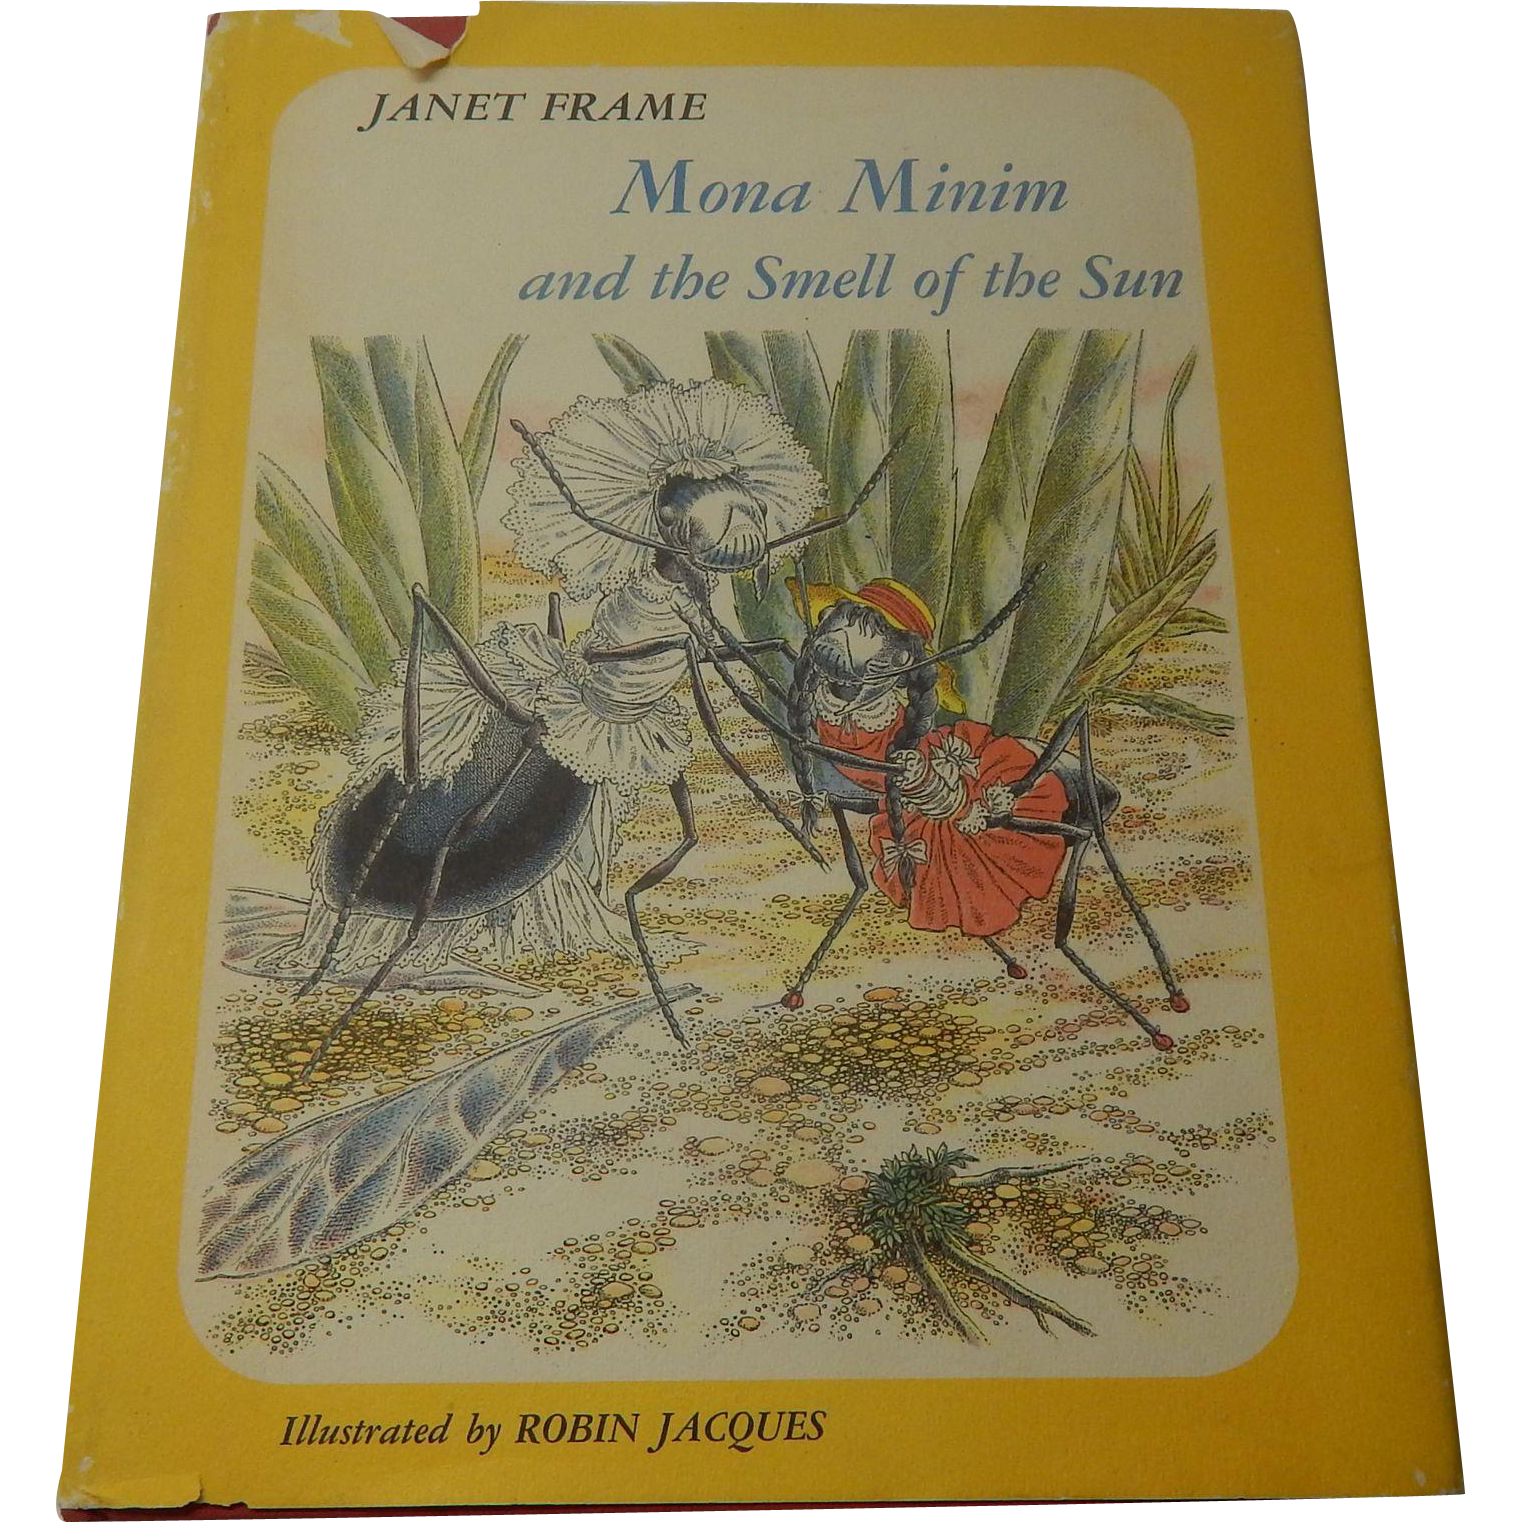 Mona Minim and the Smell of the Sun by Janet Frame